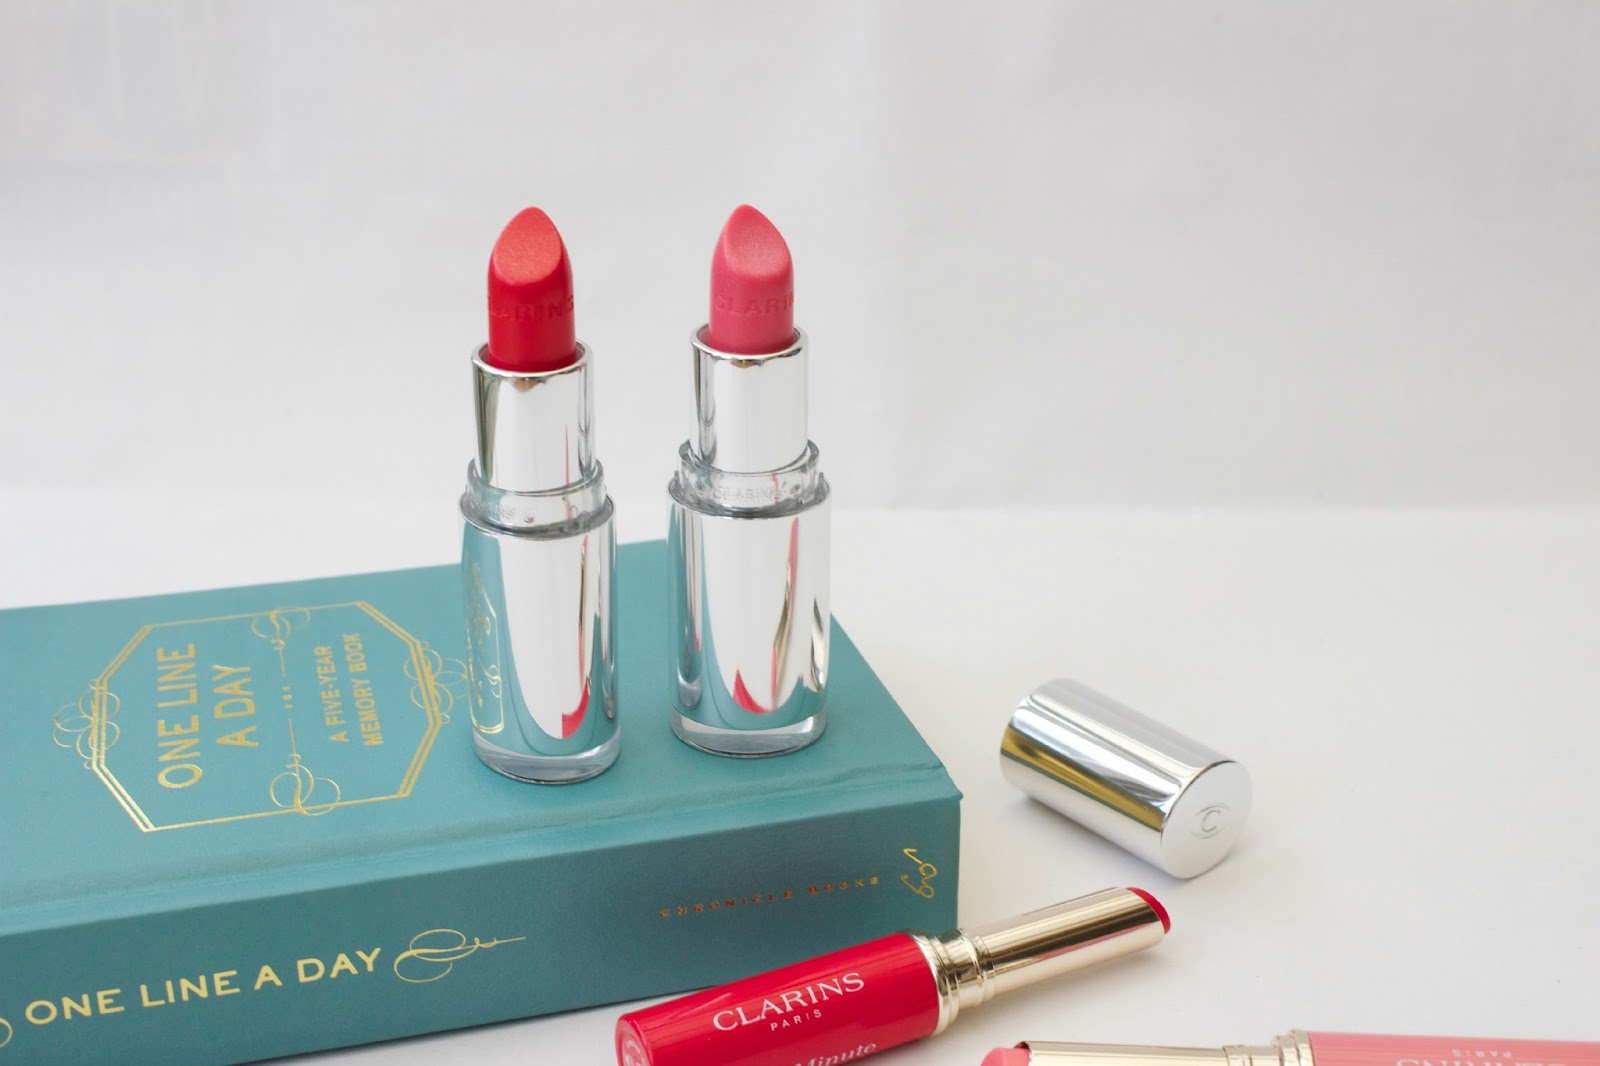 Clarins Garden Escape Spring Collection Joli Rouge Brilliant Sheer Shine Lipsticks